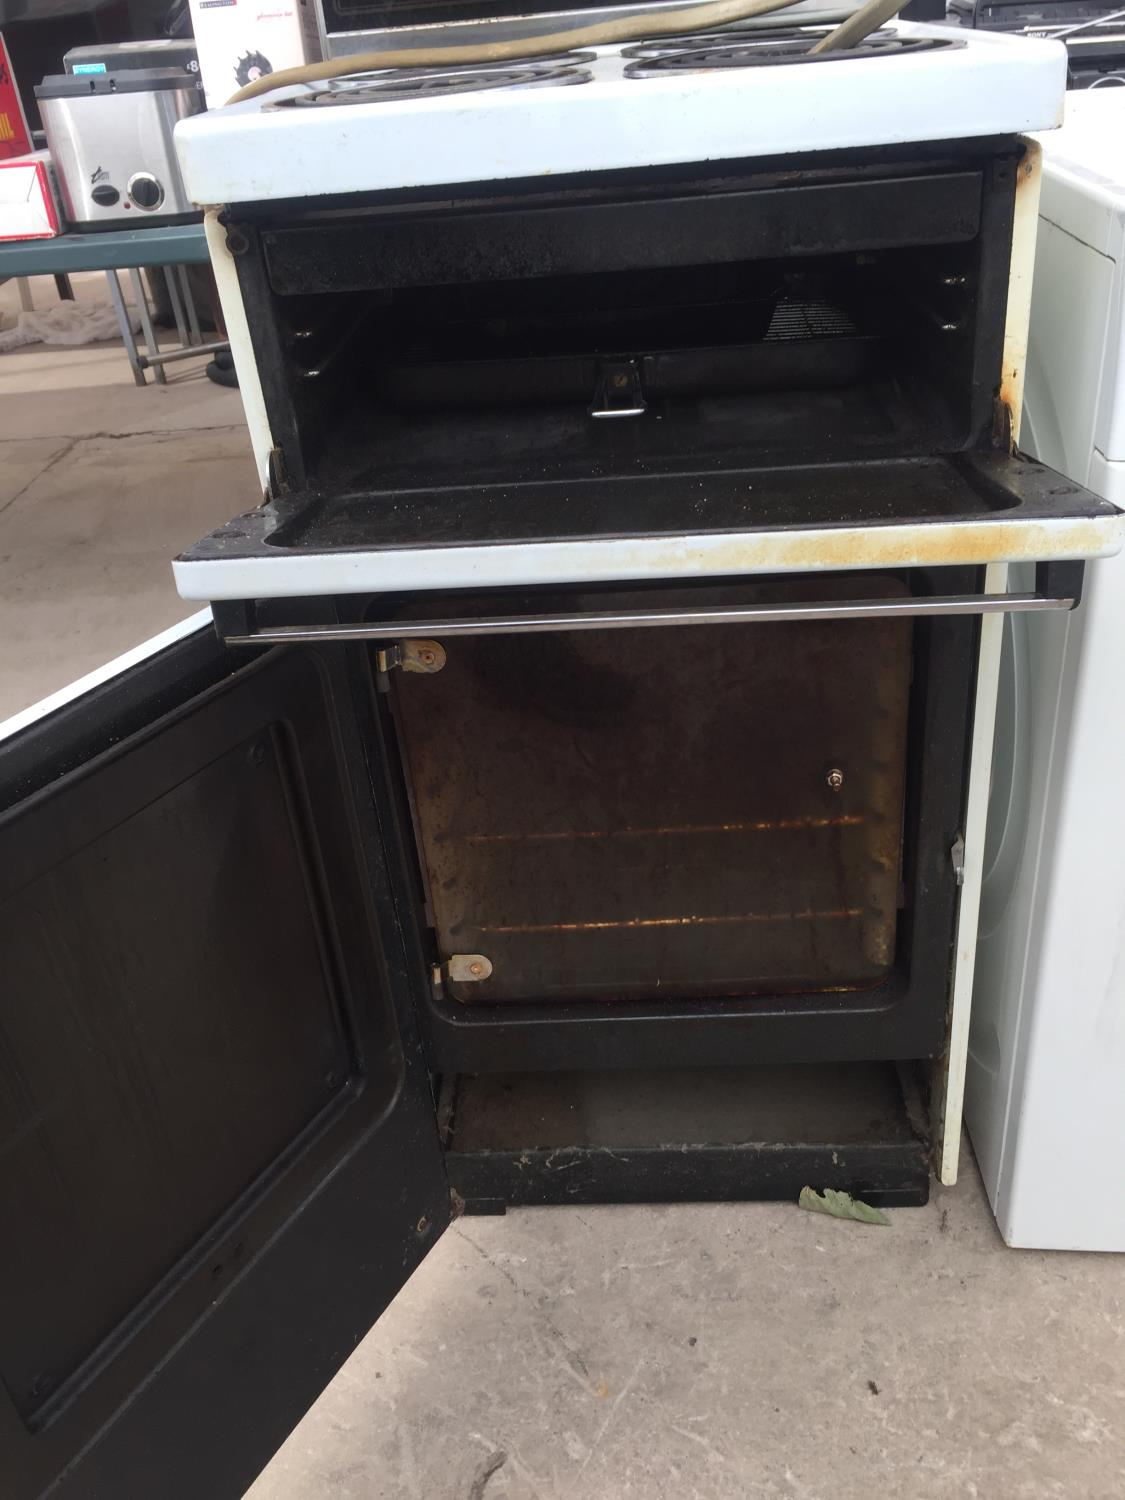 A WHITE FREESTANDING BELLING OVEN AND HOB - Image 3 of 3